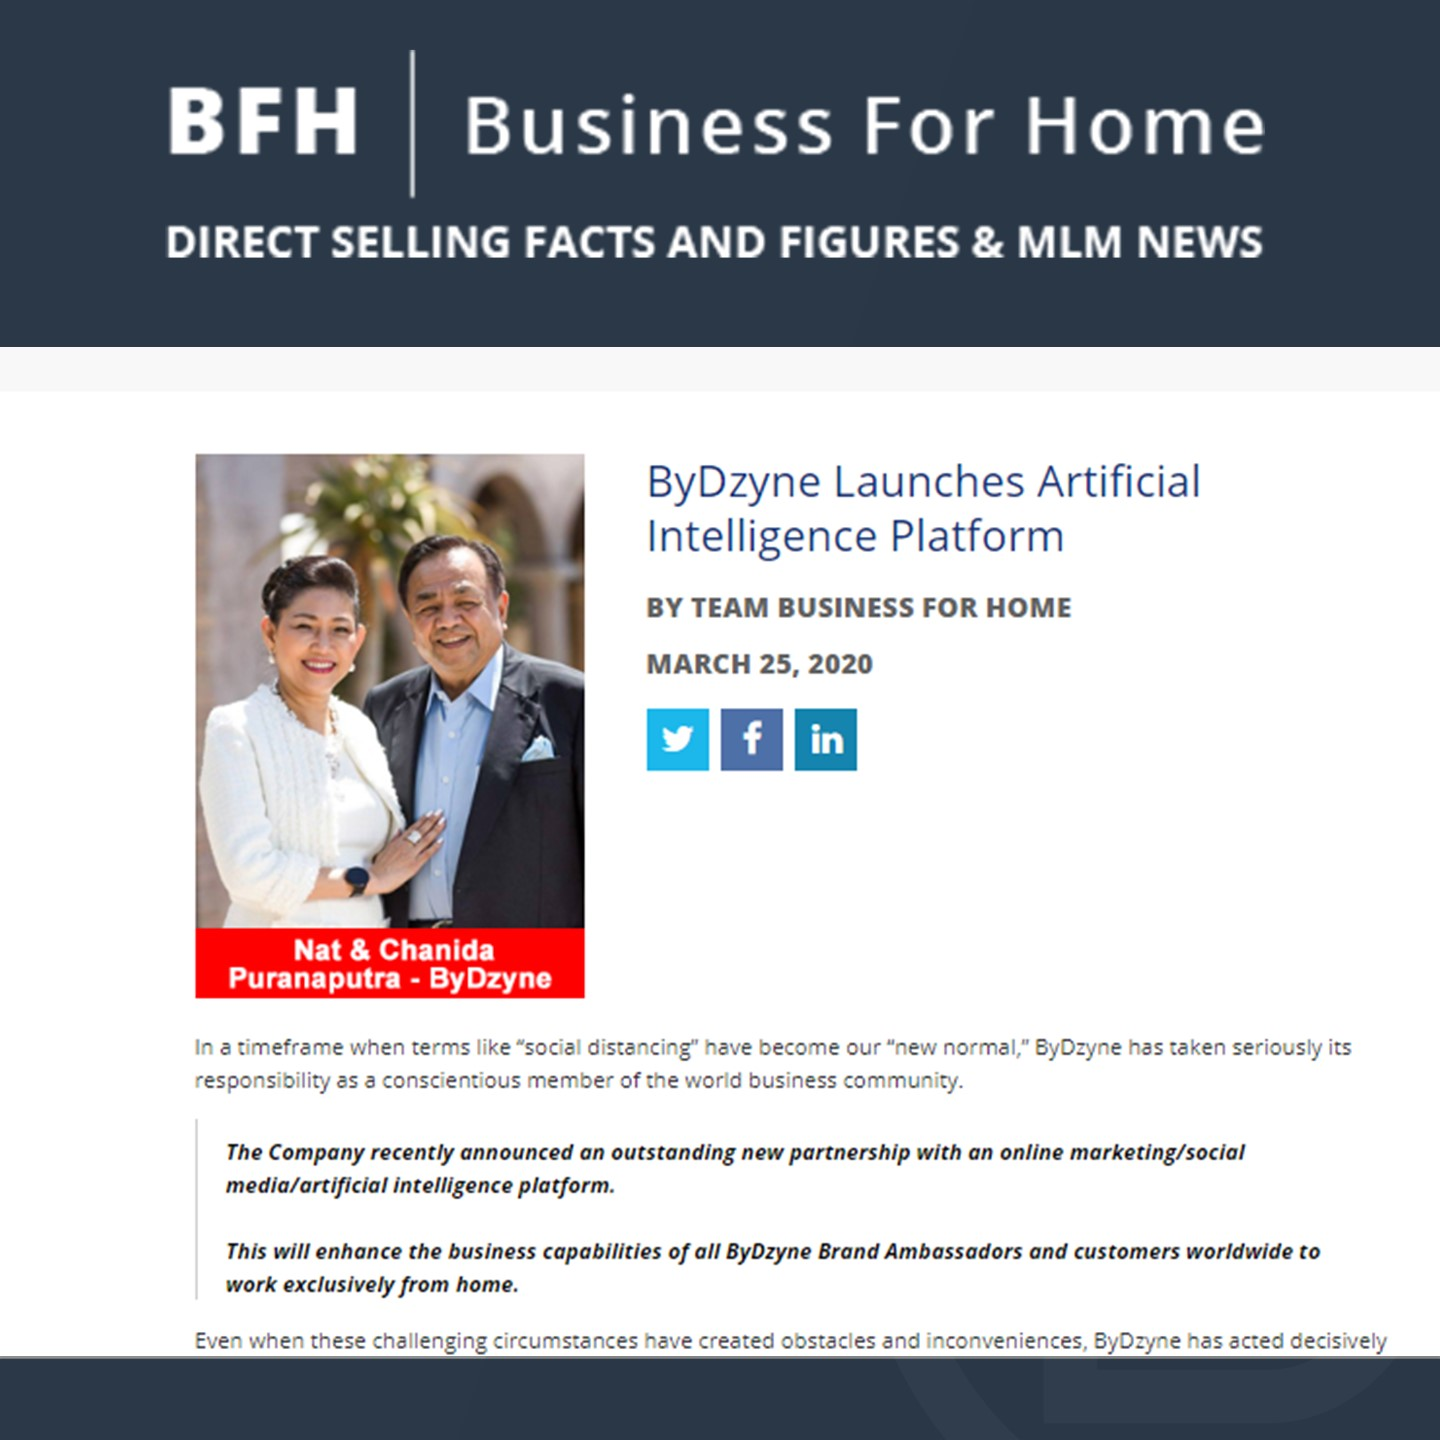 BFH: ByDzyne Launches Artificial Intelligence Platform